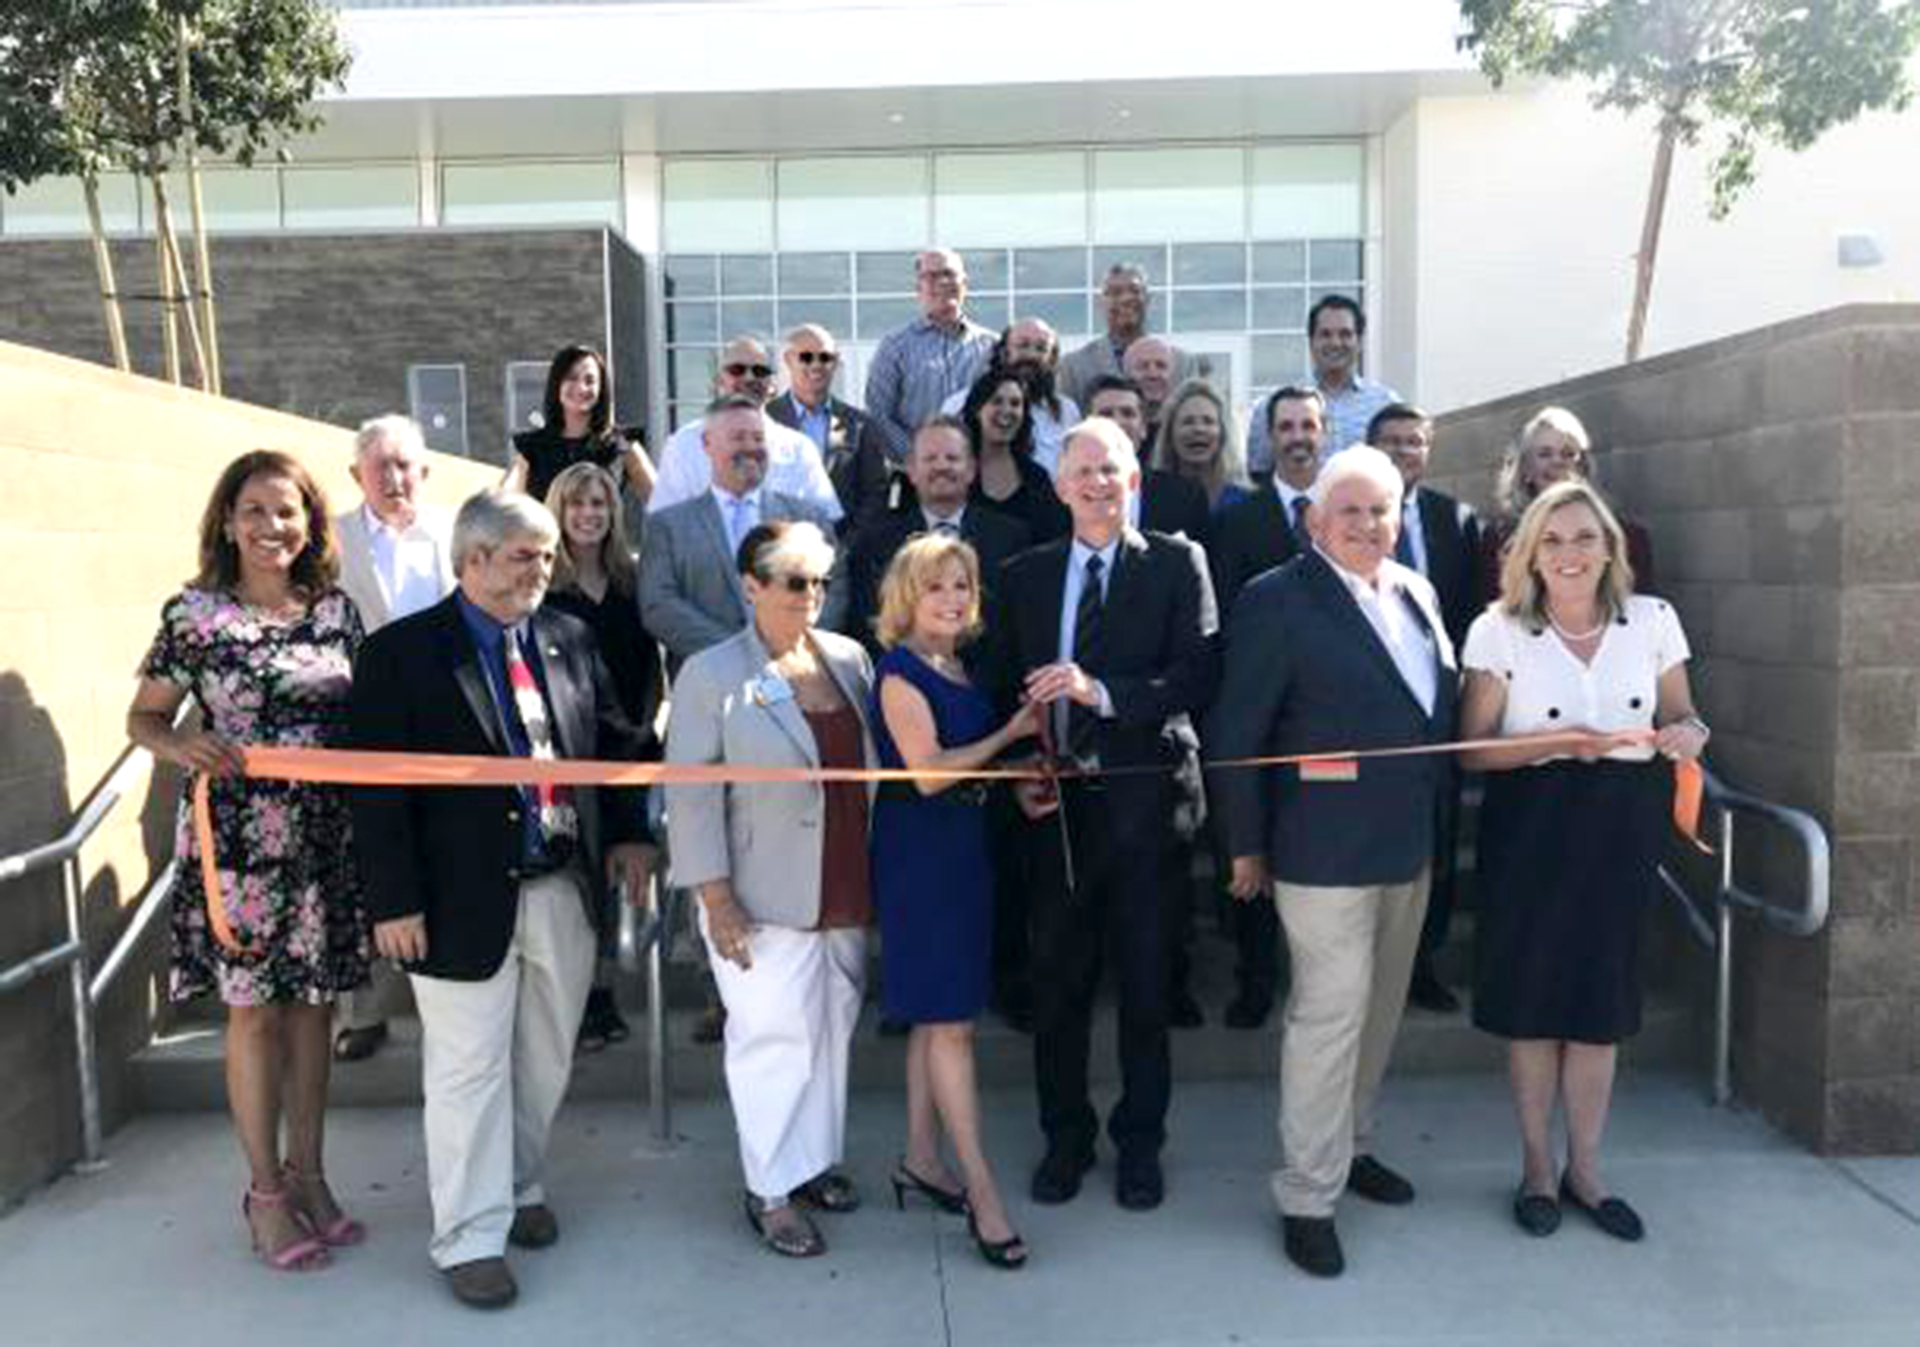 hart-castaic-high-school-ribbon-cutting-20190808.jpg